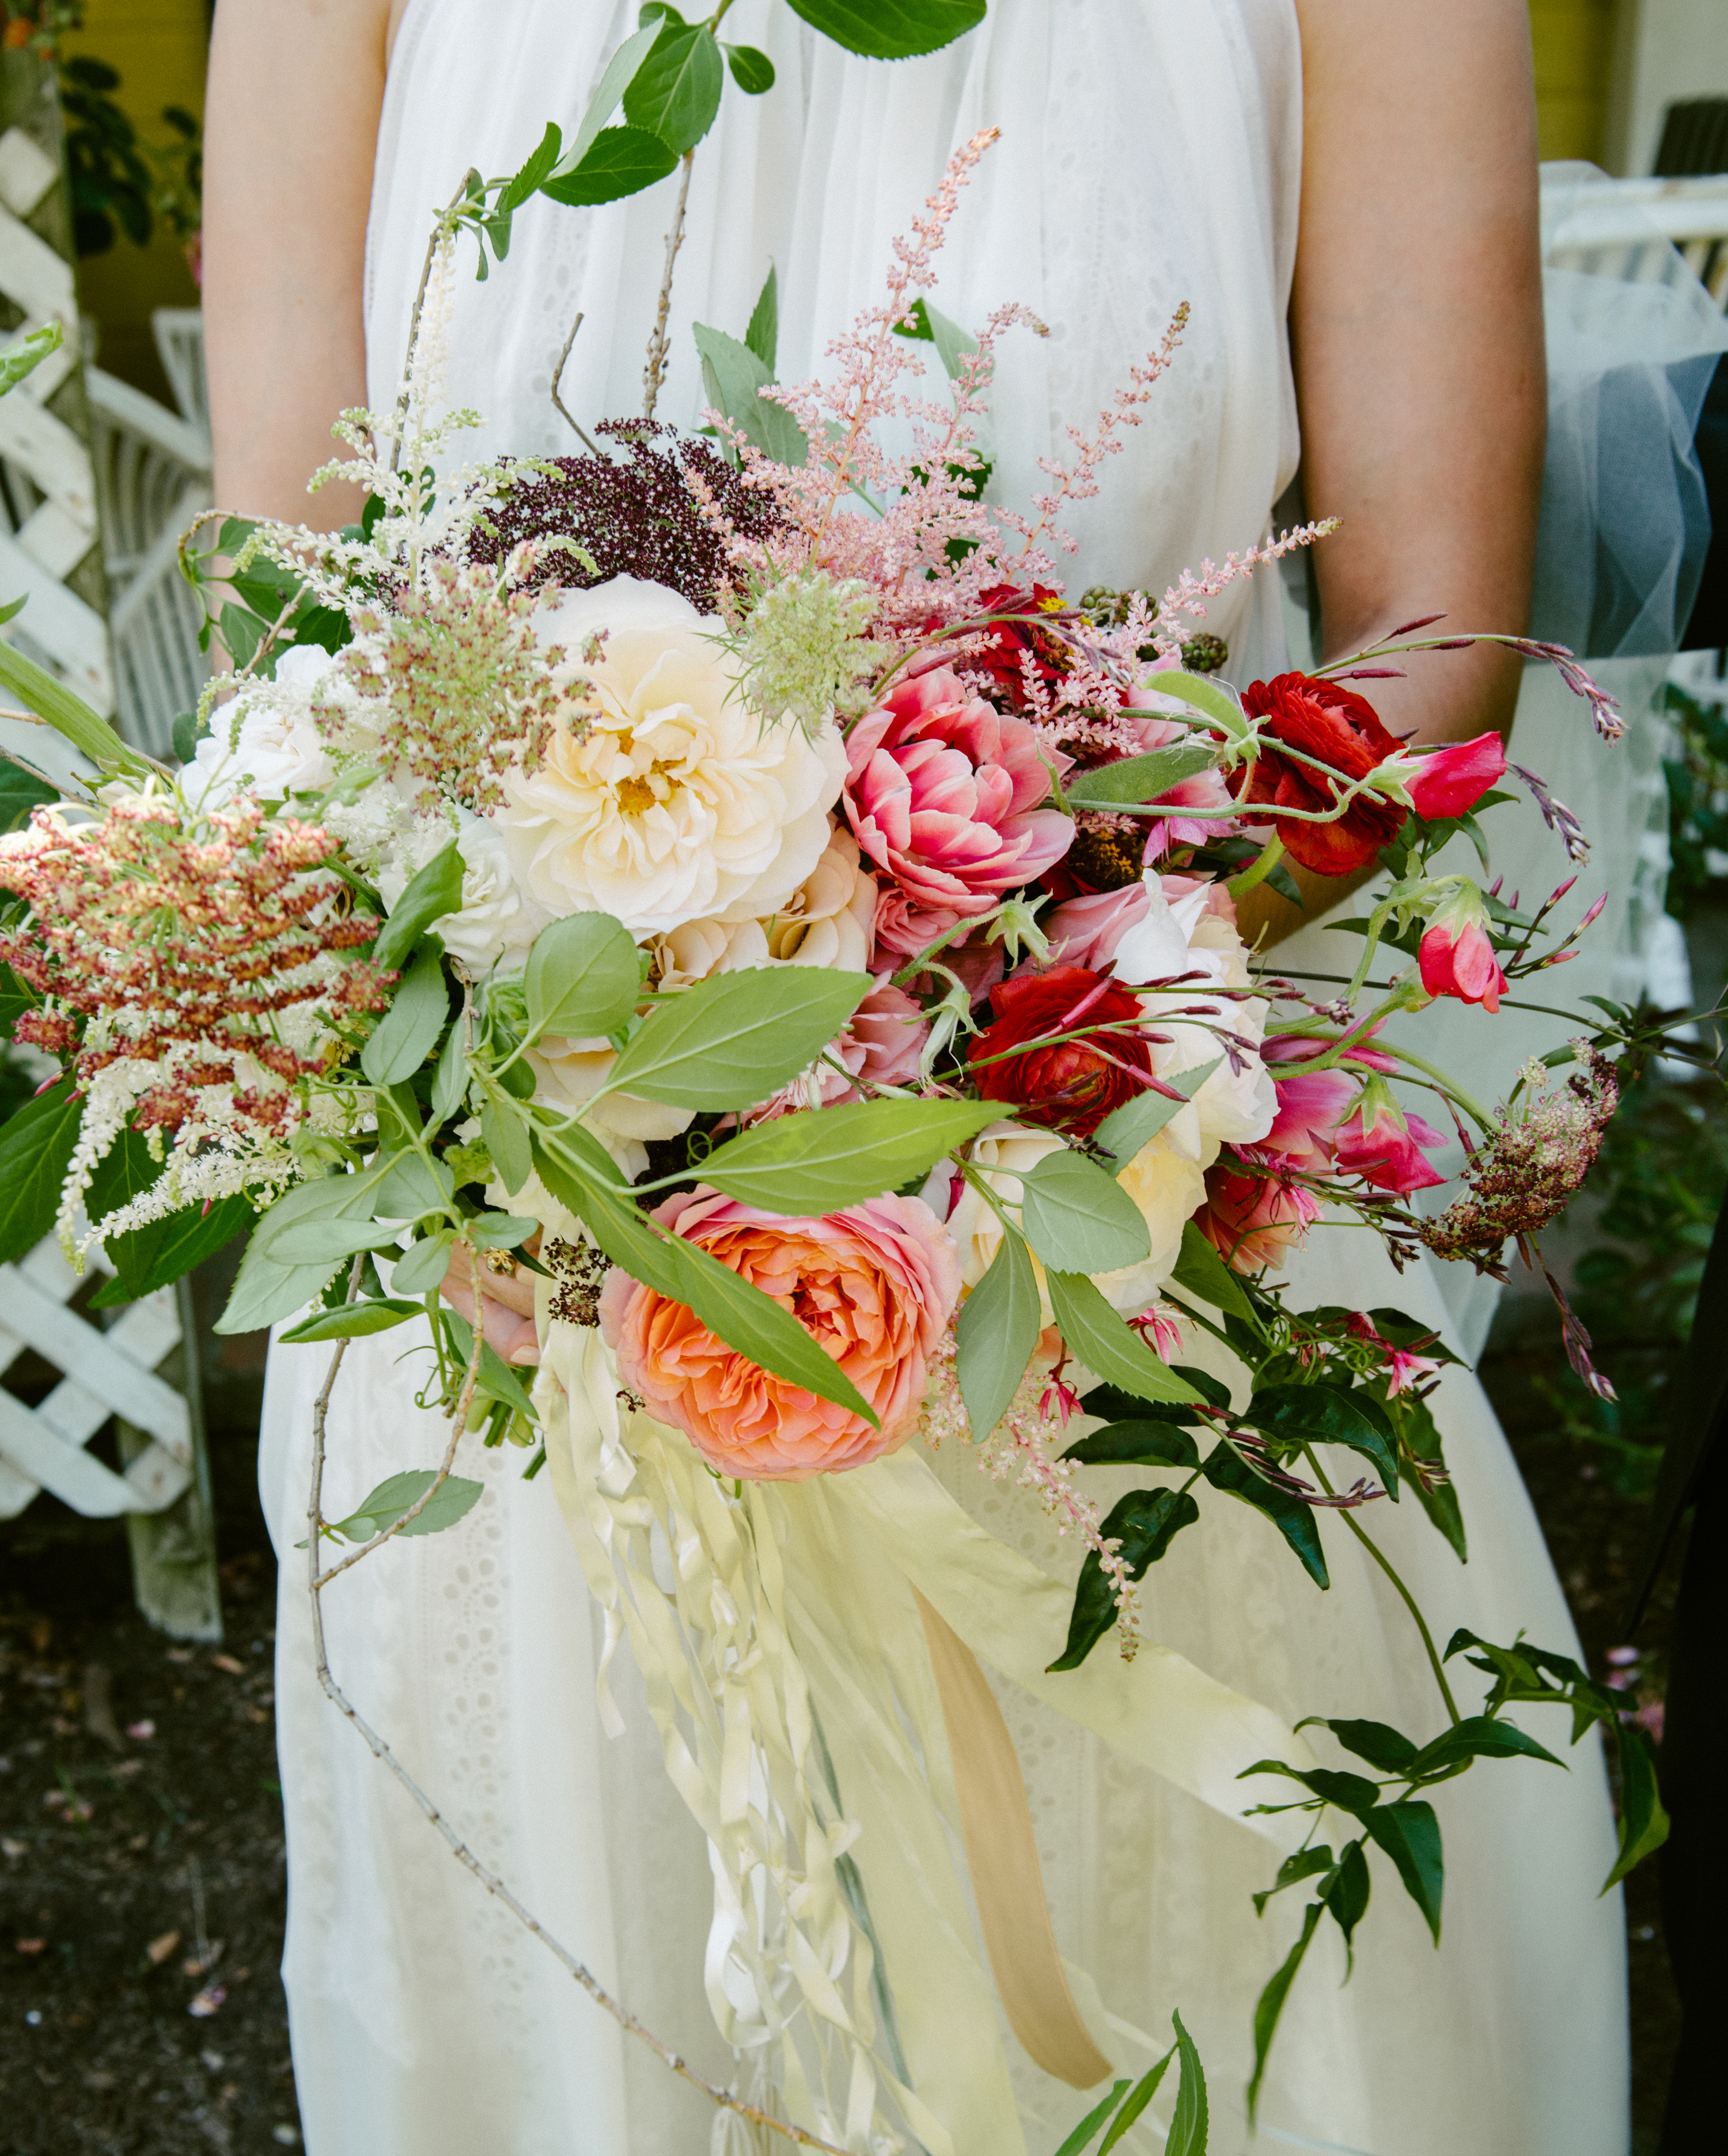 Spur-of-the-Moment Bouquet